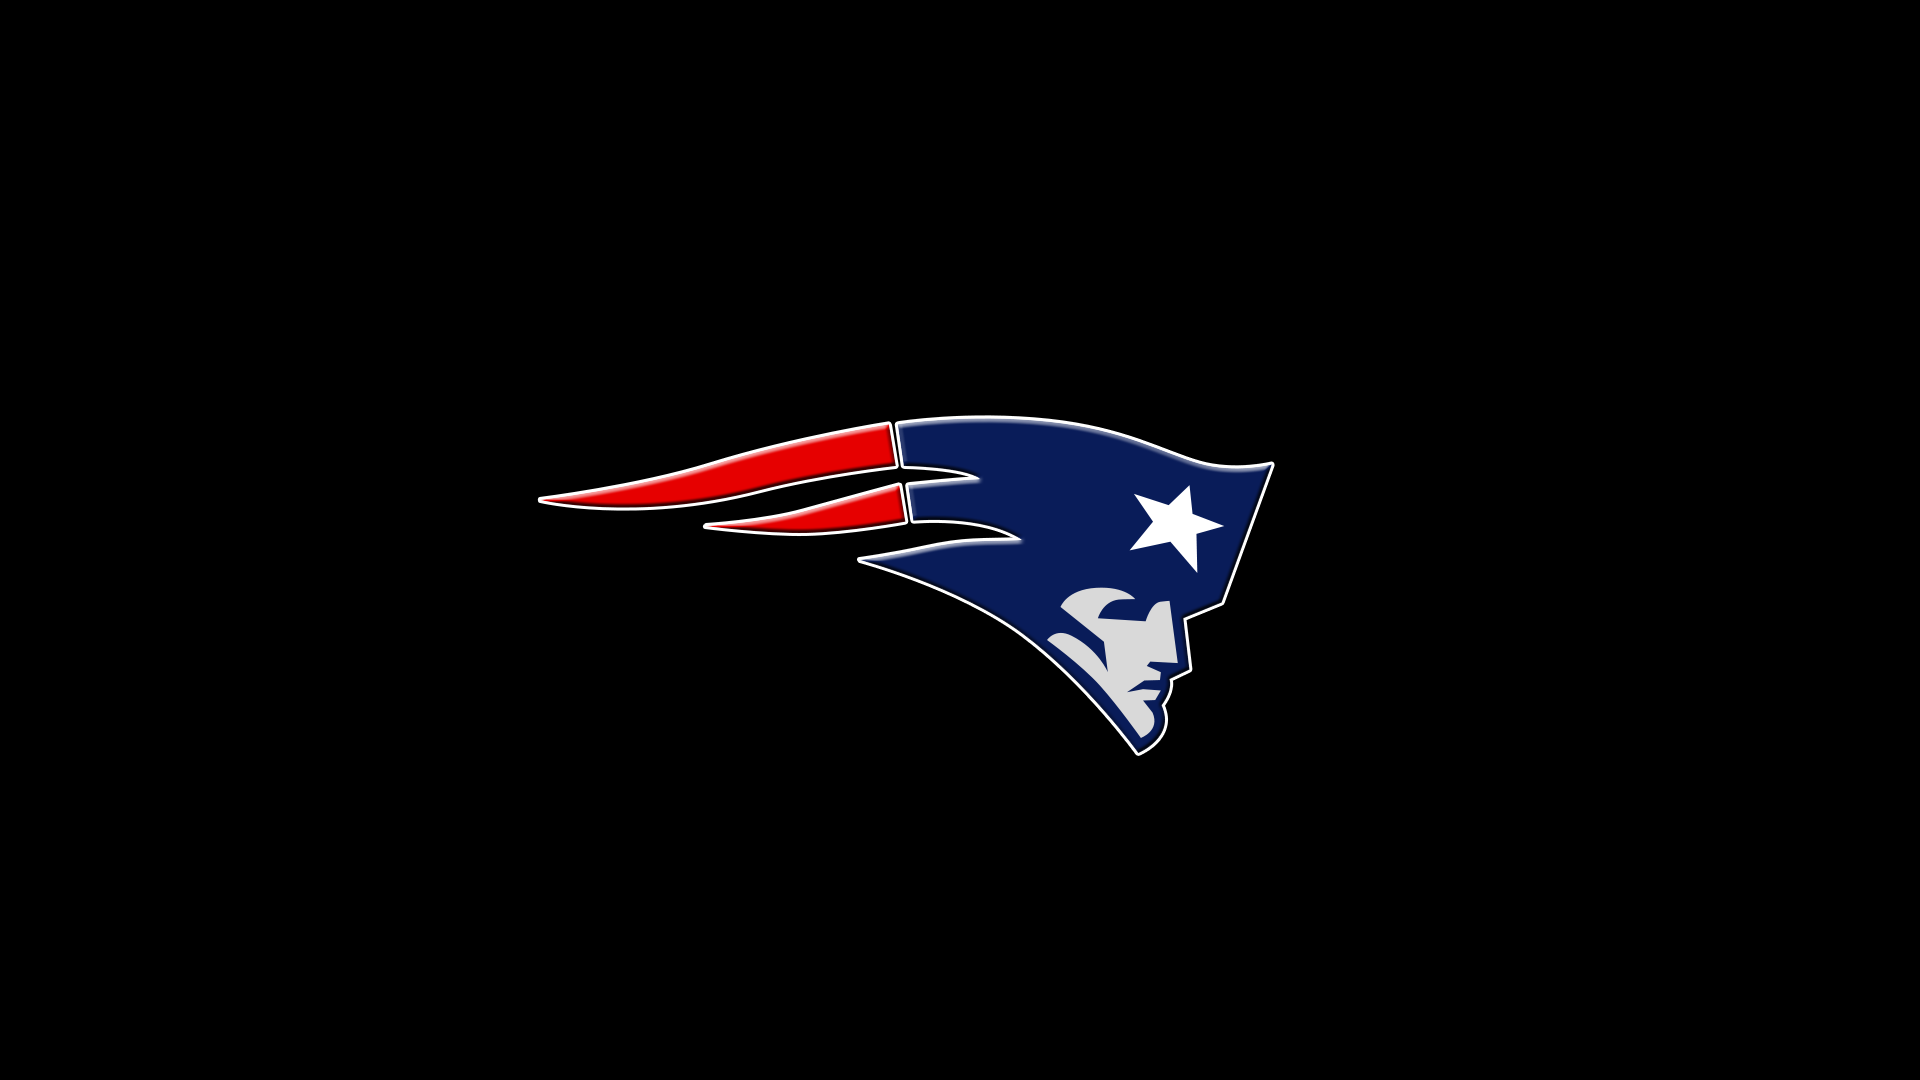 New England Patriots Logo Black Background